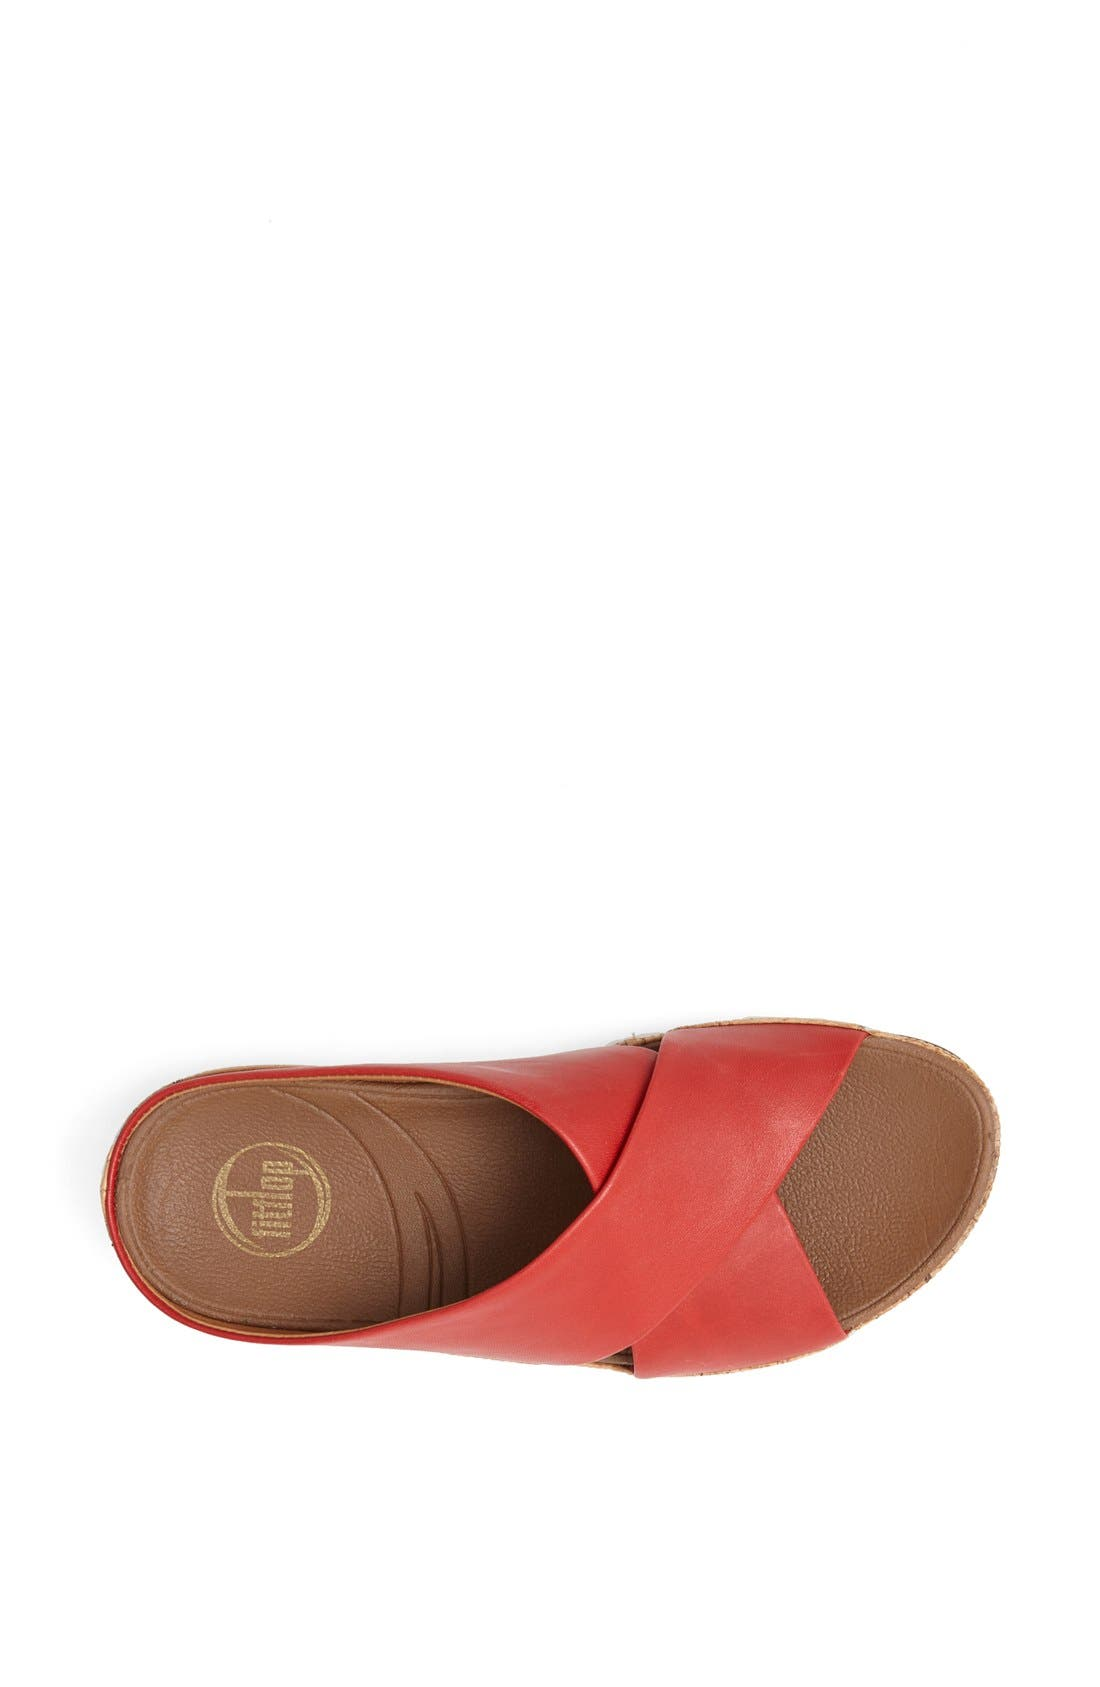 Alternate Image 3  - FitFlop 'Kys™' Leather Sandal